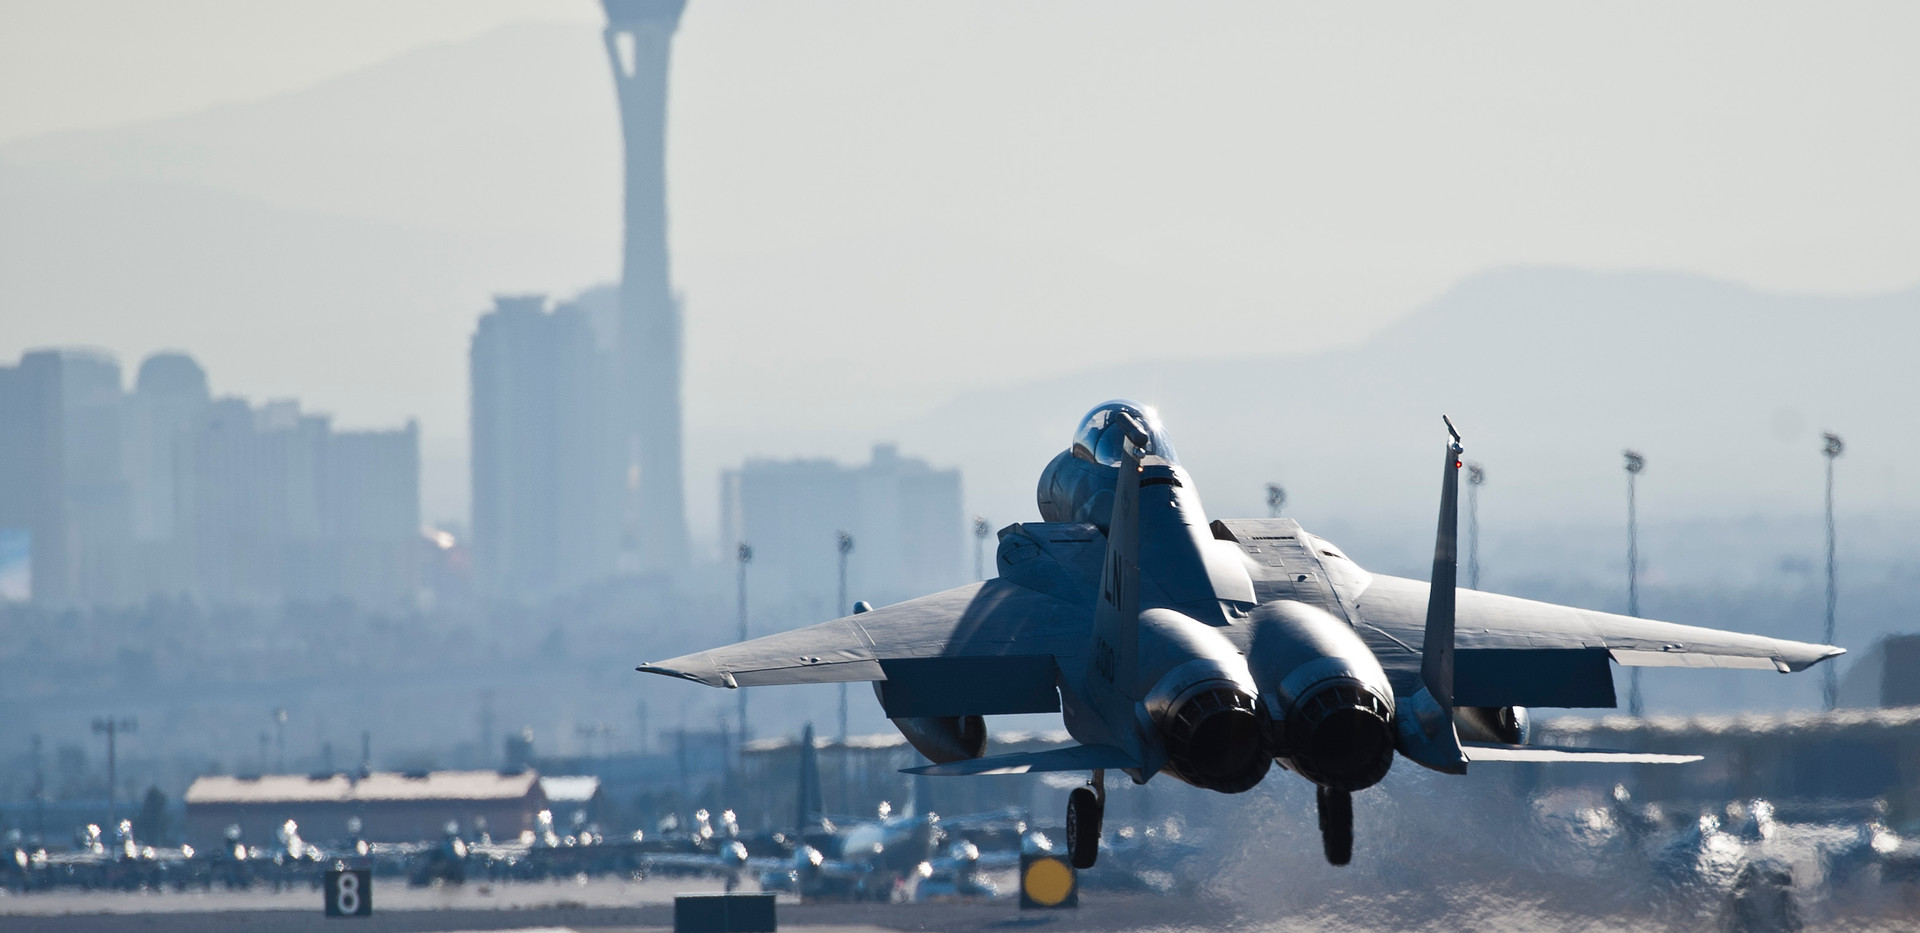 Take of from Nellis Air Force Base